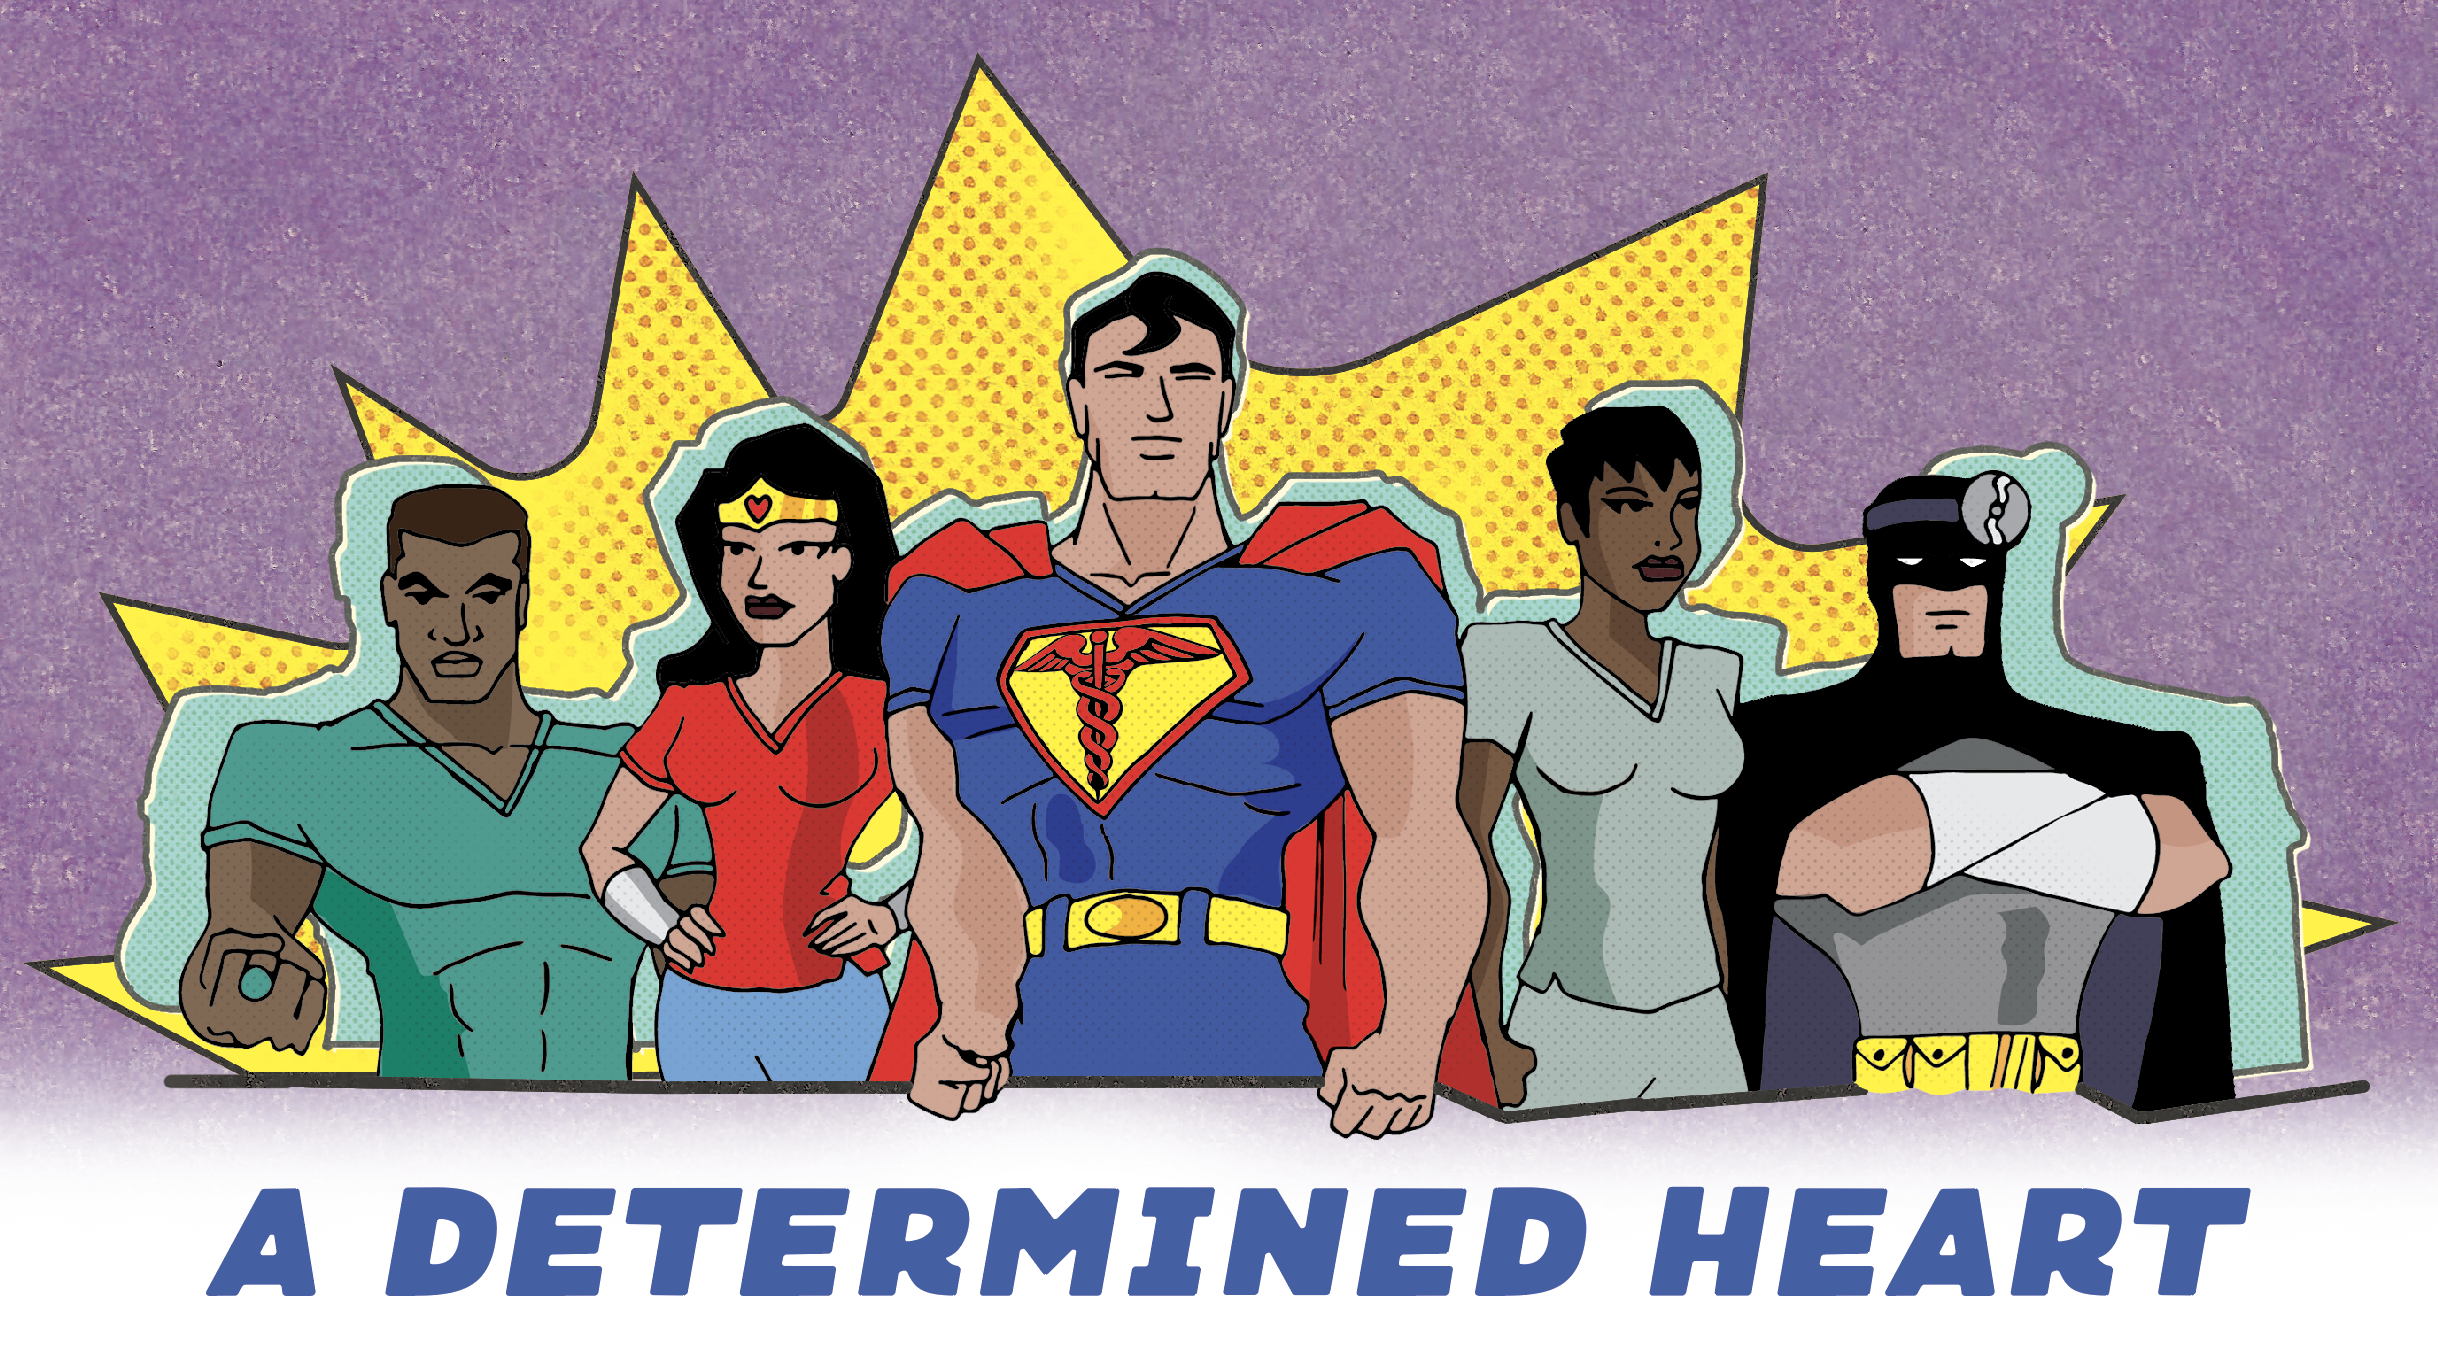 A Determined Heart; Justice League drawn as doctors and nurses